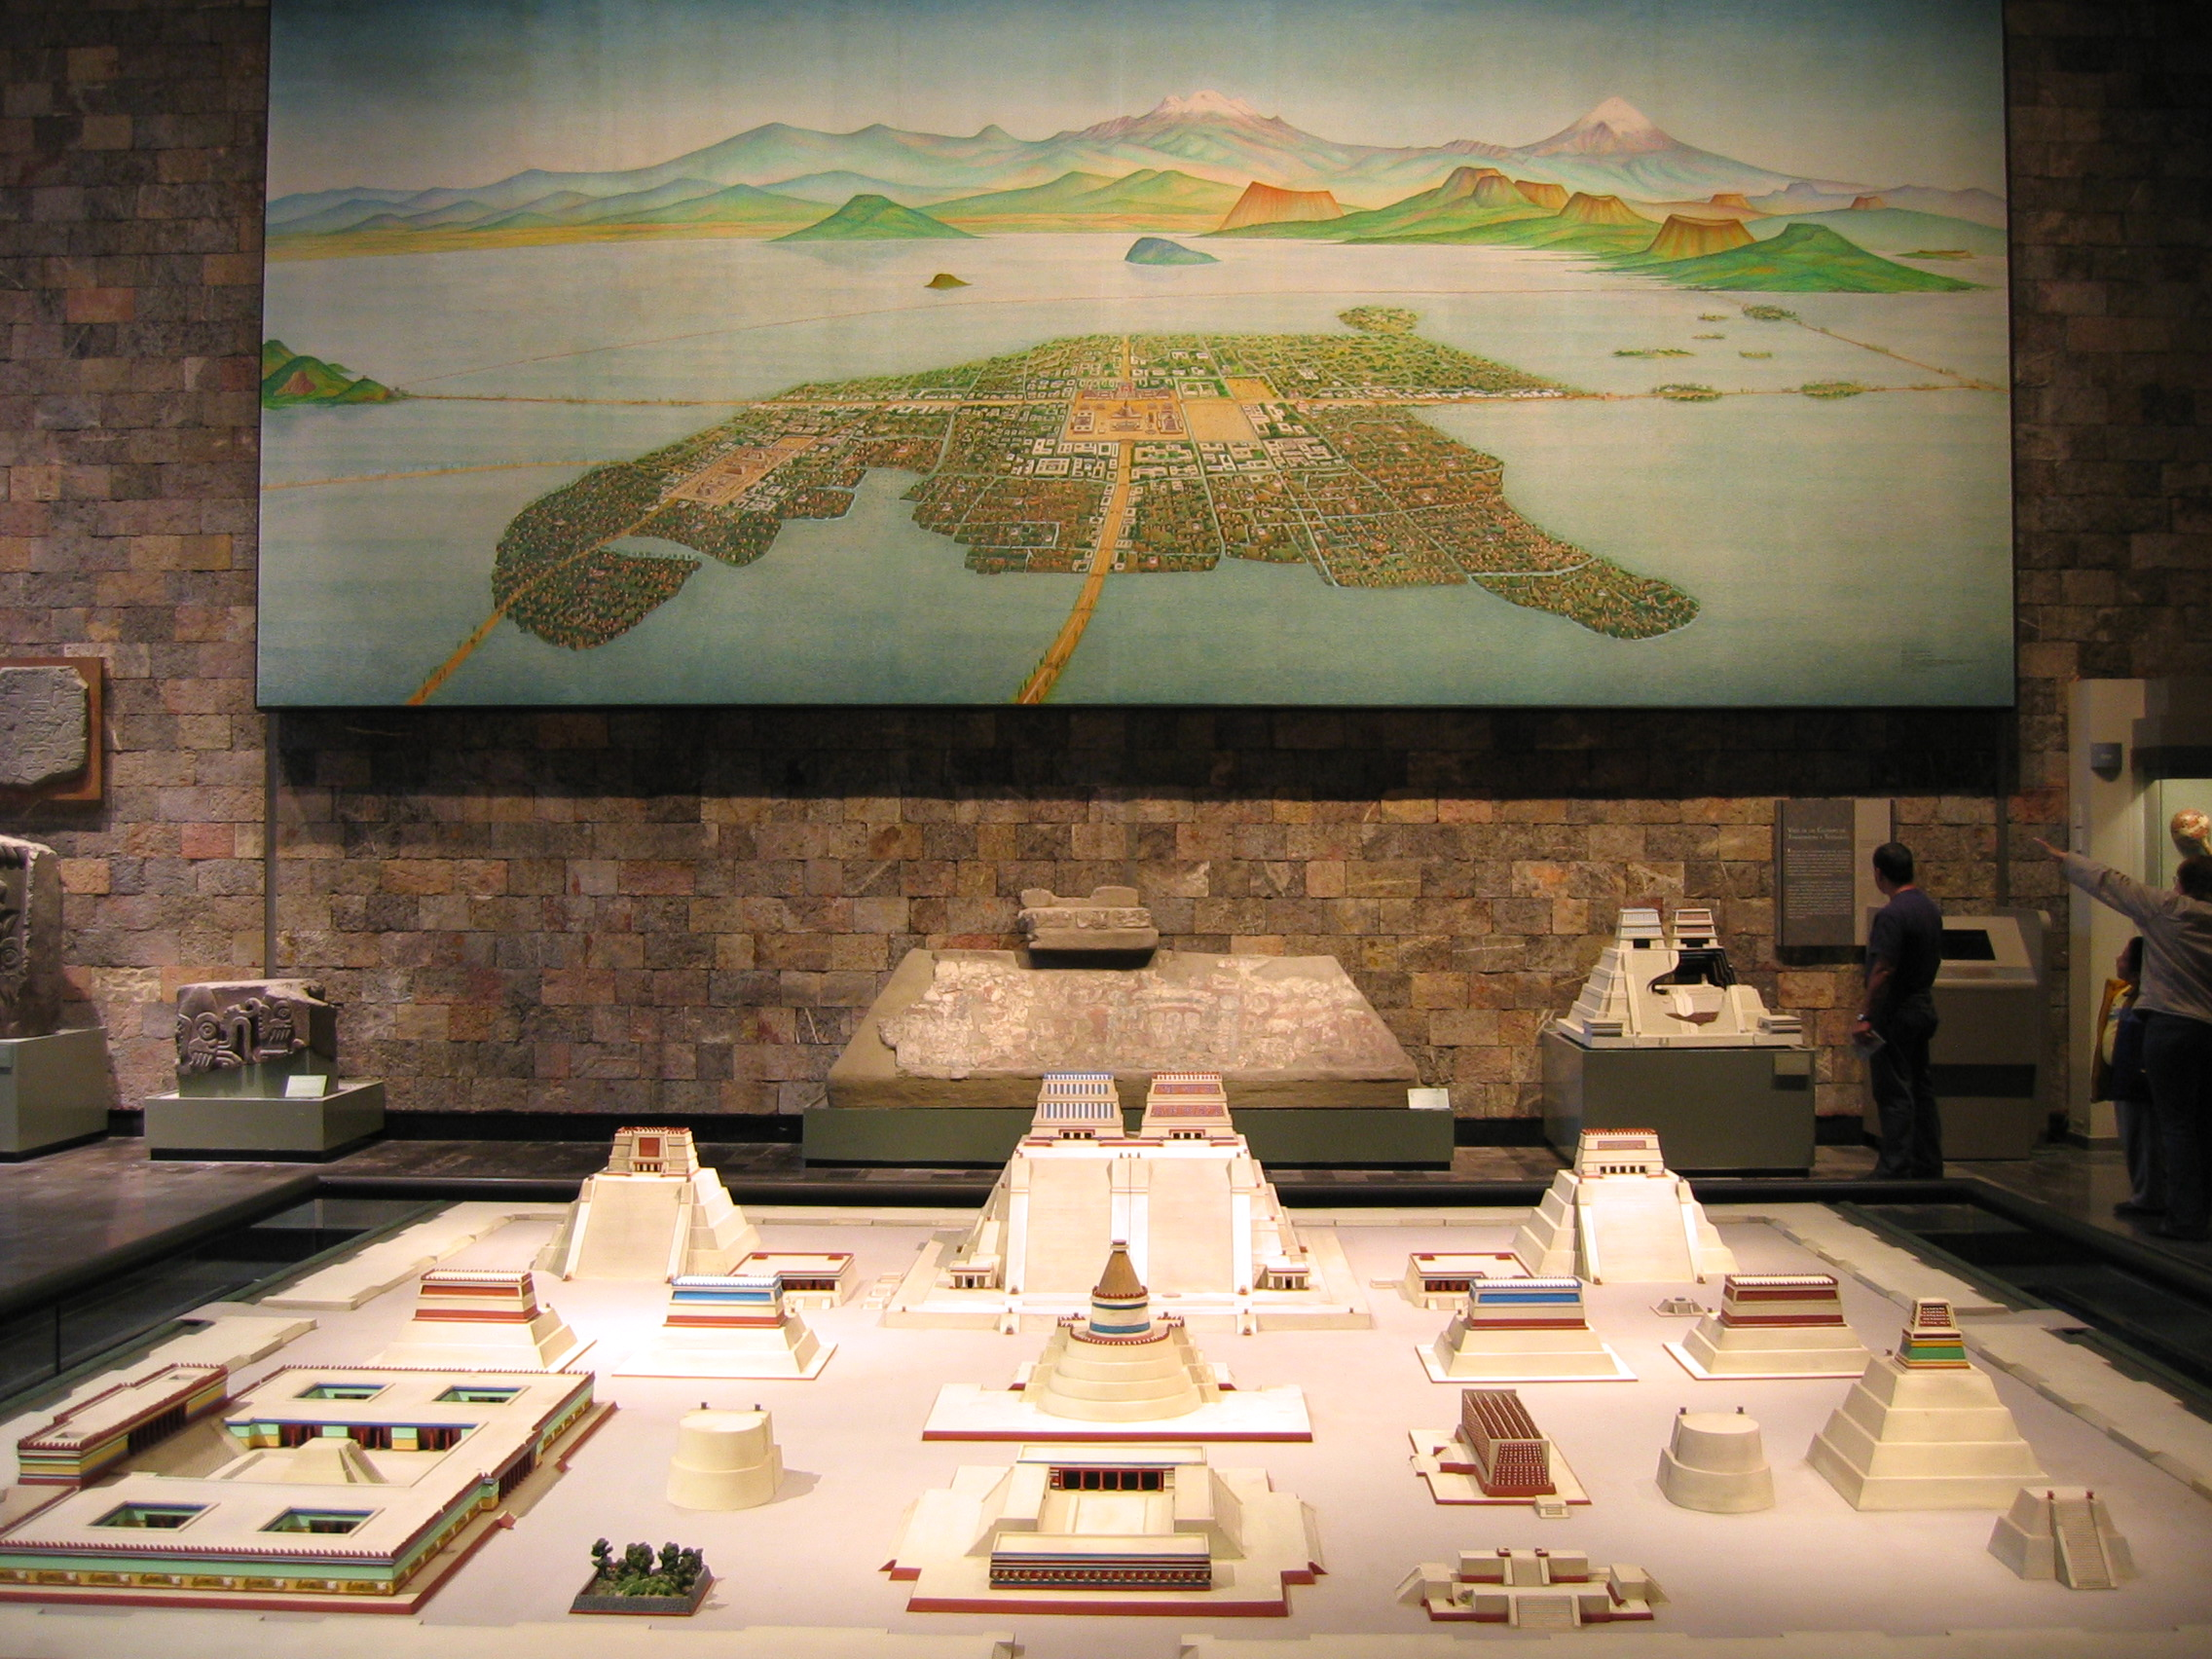 Model and Mural of Tenochtitlan